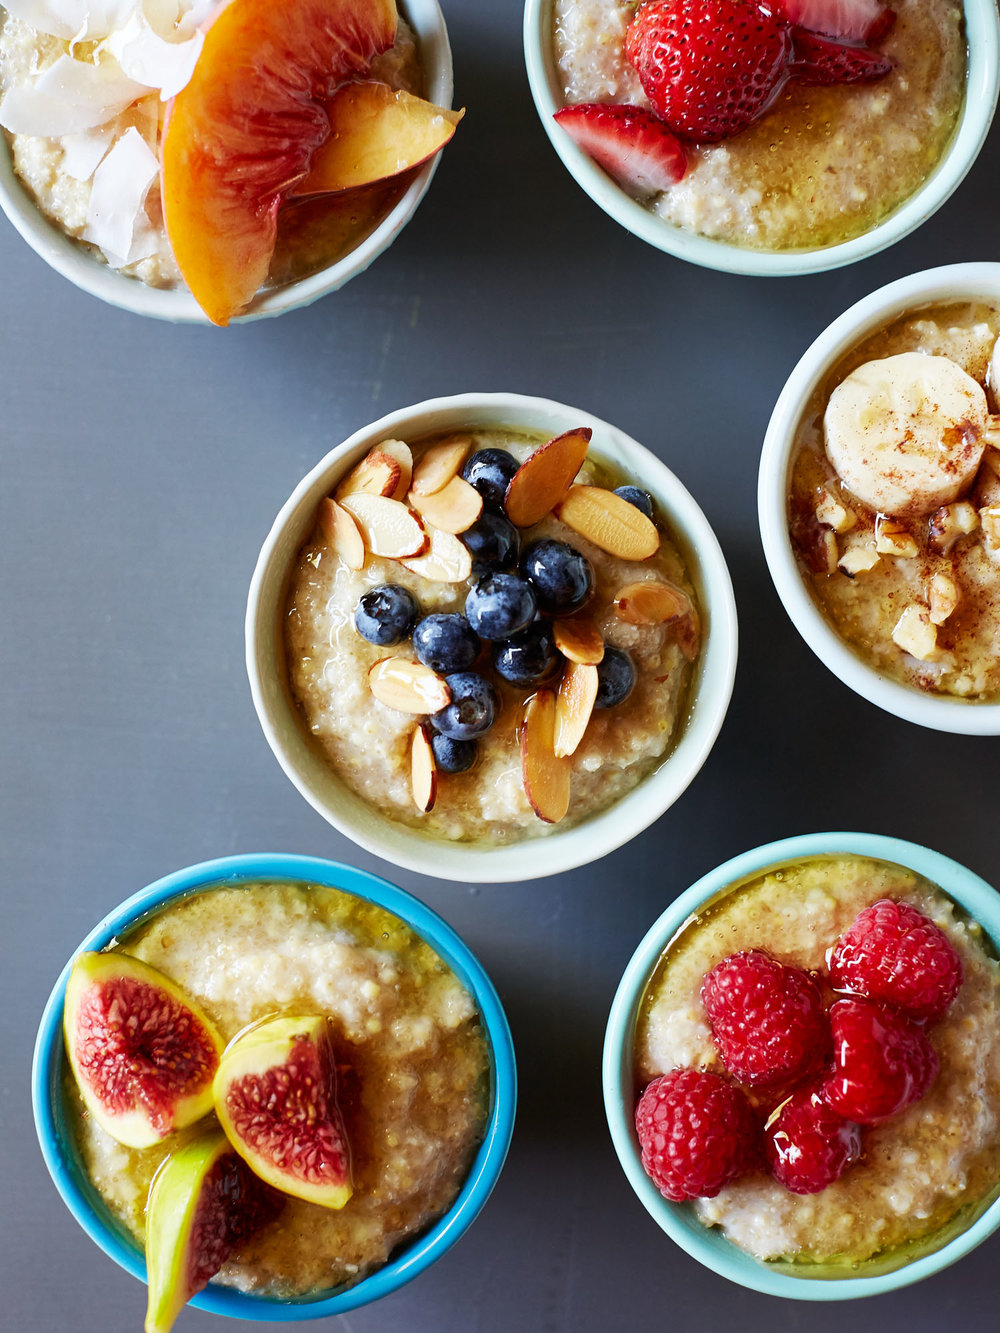 20150915_Tia_Breakfast_AmaranthPorridge_051.jpg